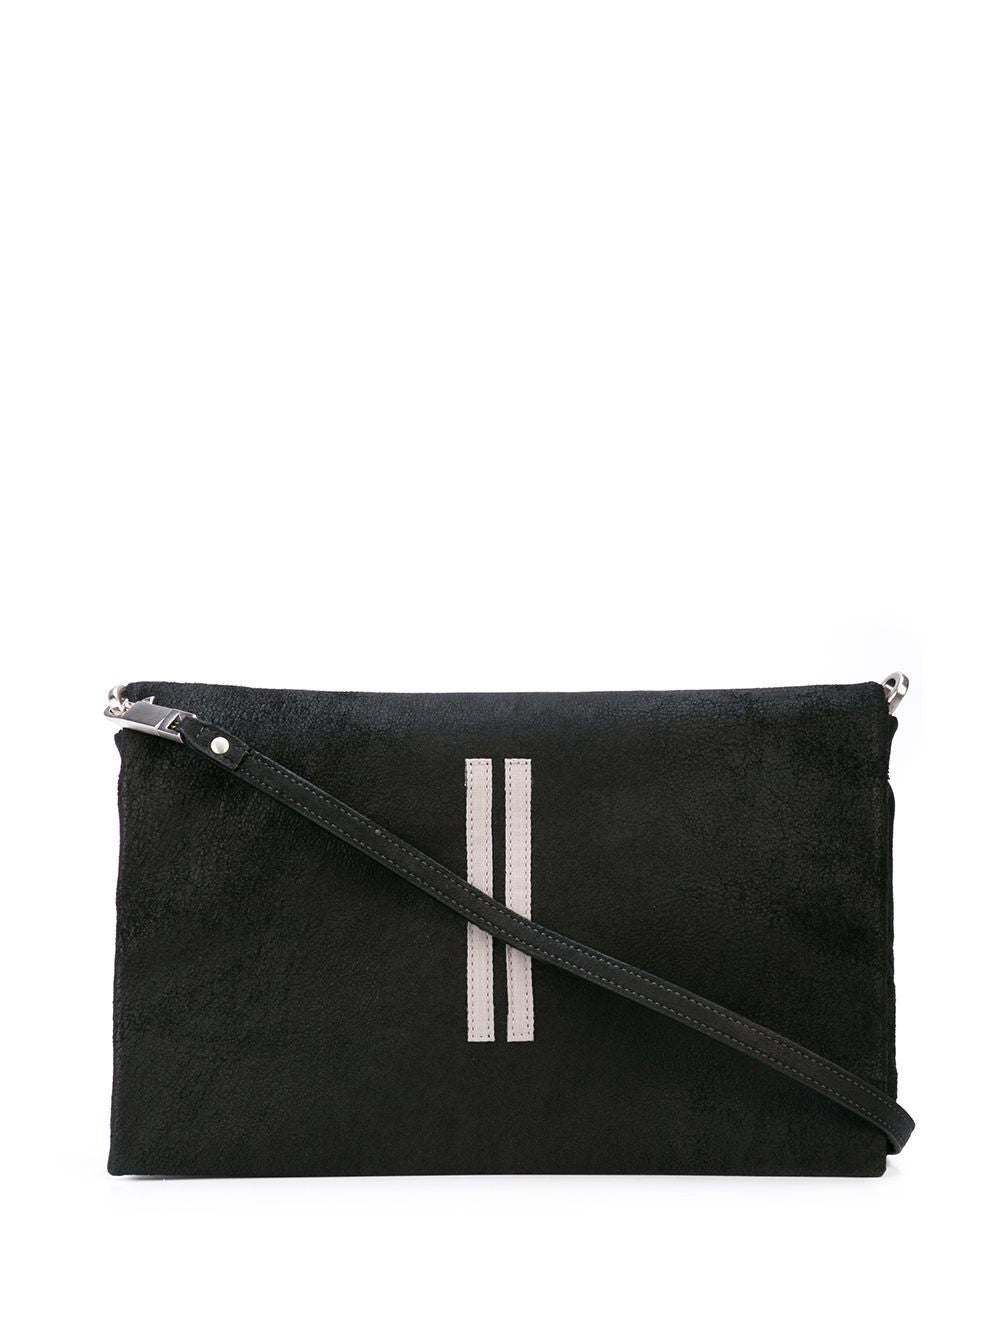 RICK OWENS MEDIUM ADRI BAG